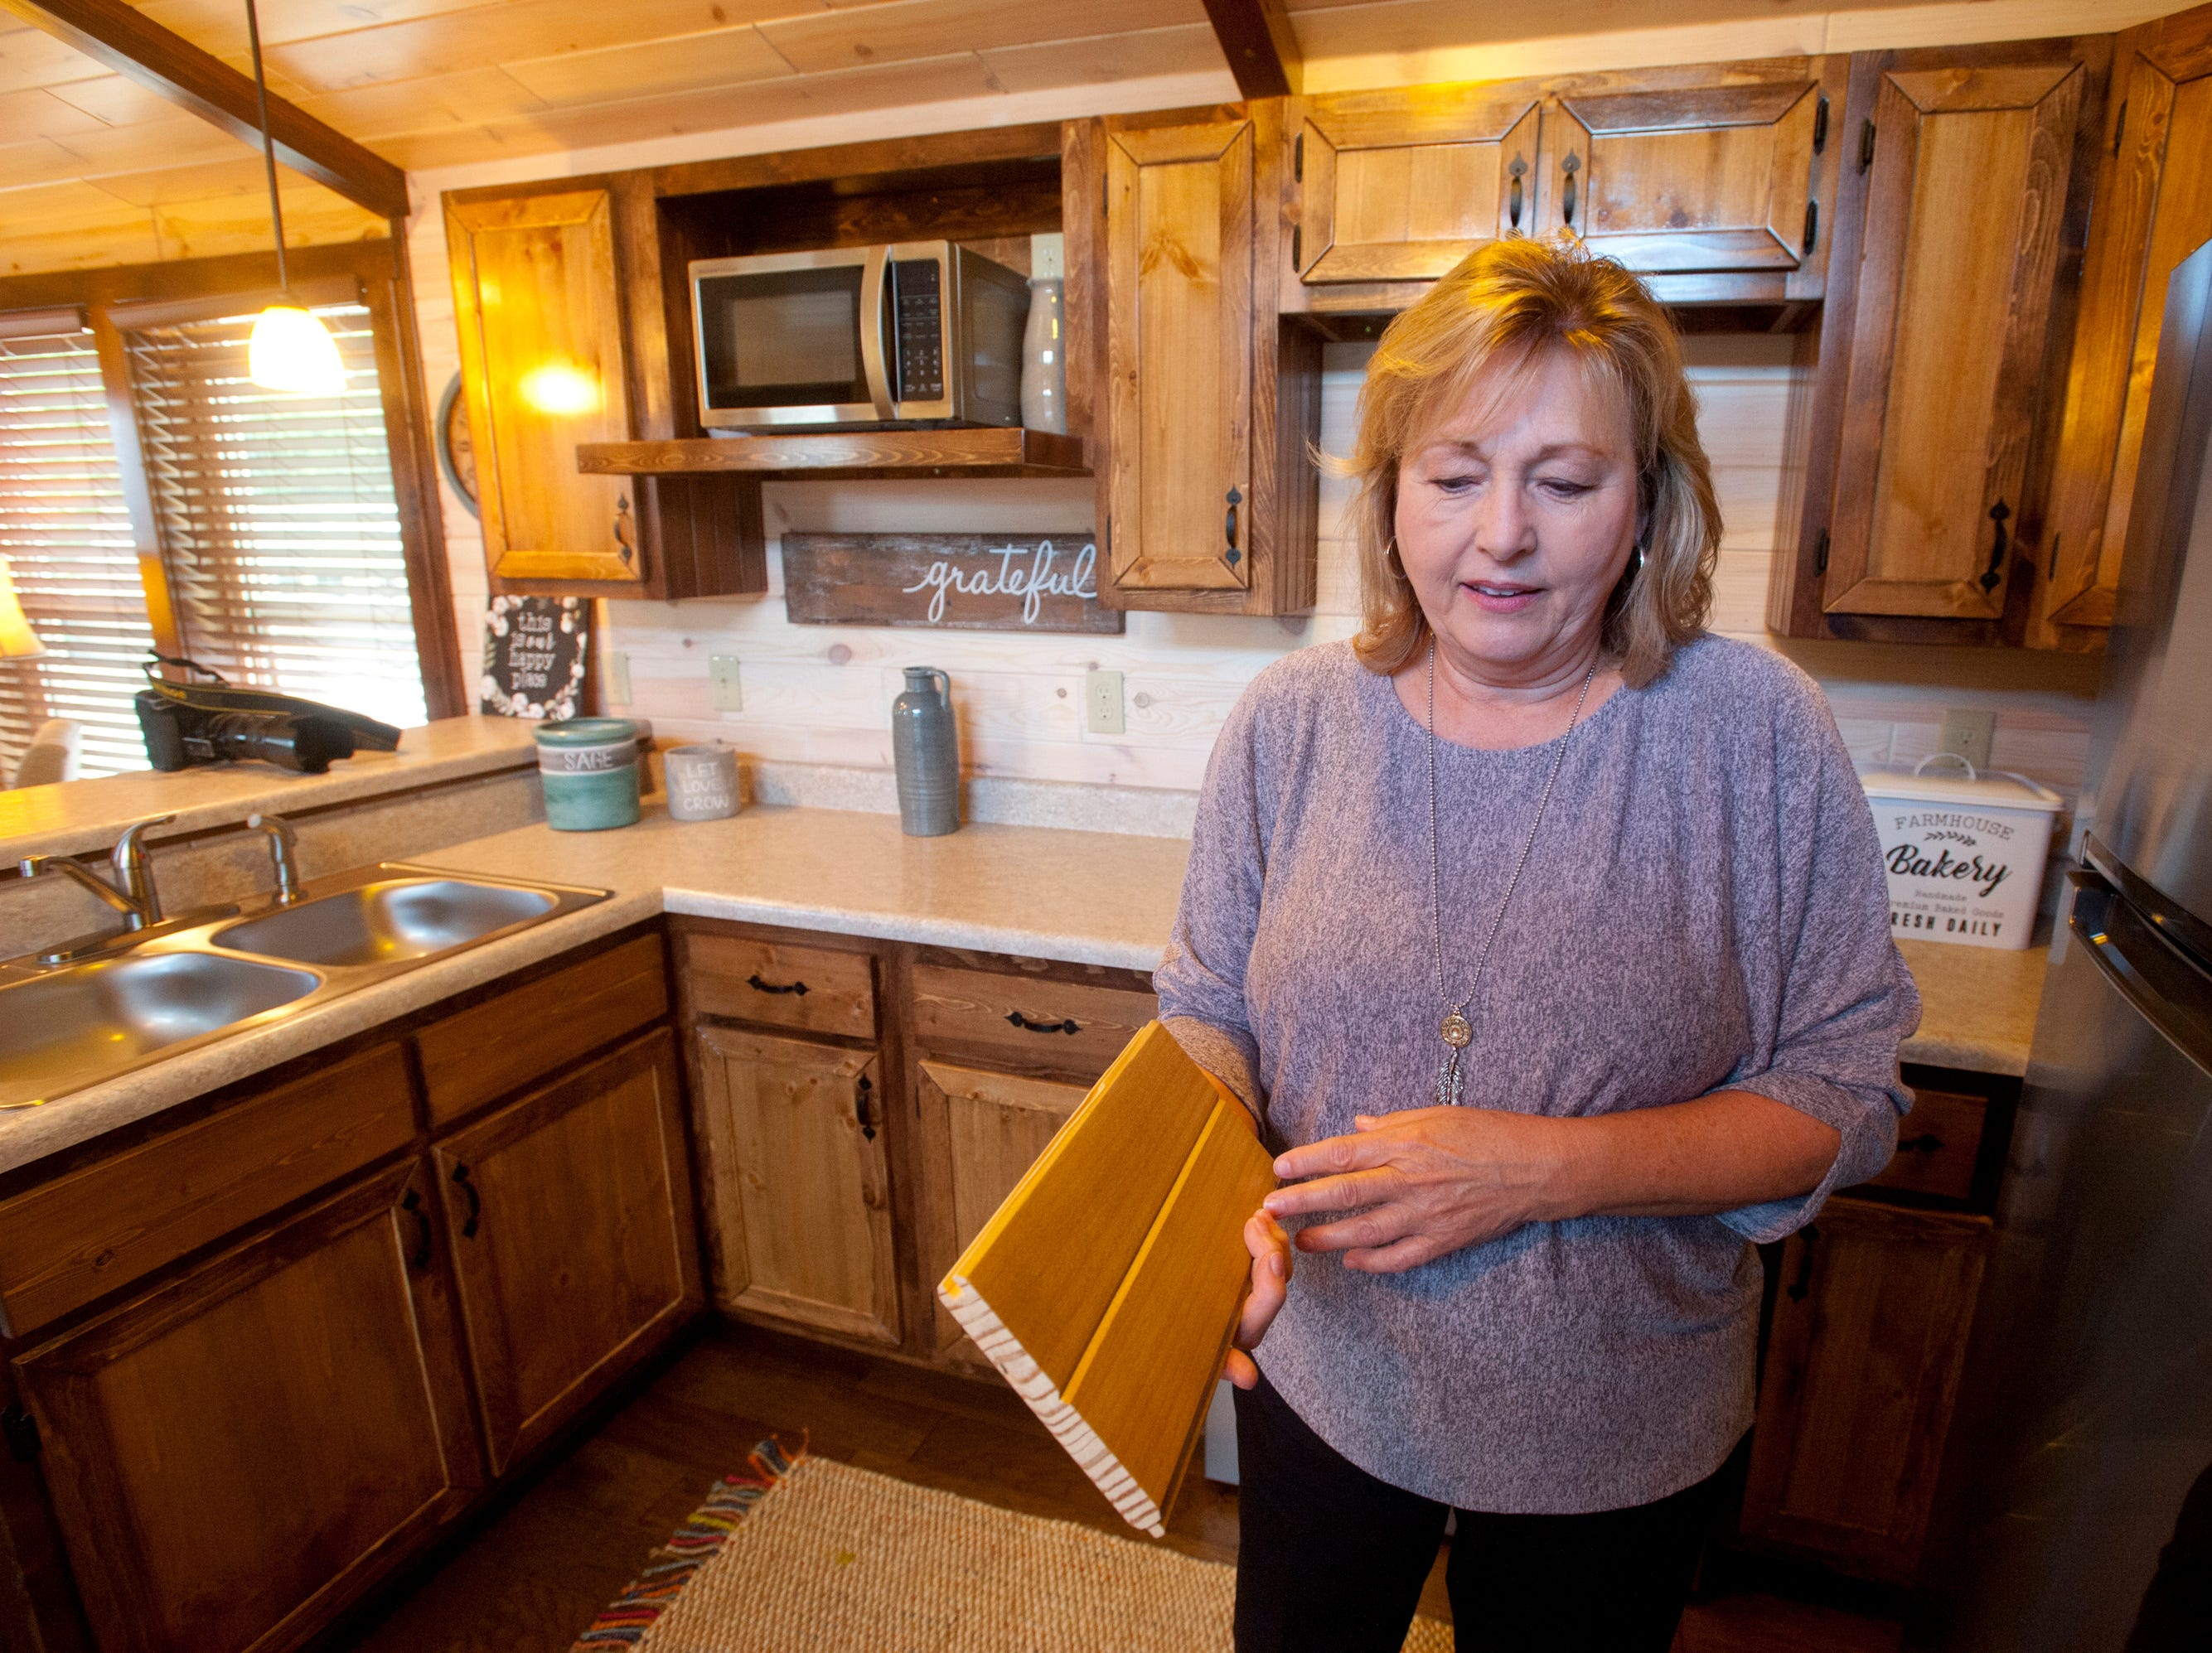 """Amish Made Cabins of Shepherdsville is making this """"White River"""" cottage, geared toward its elderly and disabled customers. Here, co-owner Pamela White shows a piece of the white pine tongue and groove used in the kitchen's backsplash. The wood was finished at the manufacturer with a white wash.September 10, 2018"""